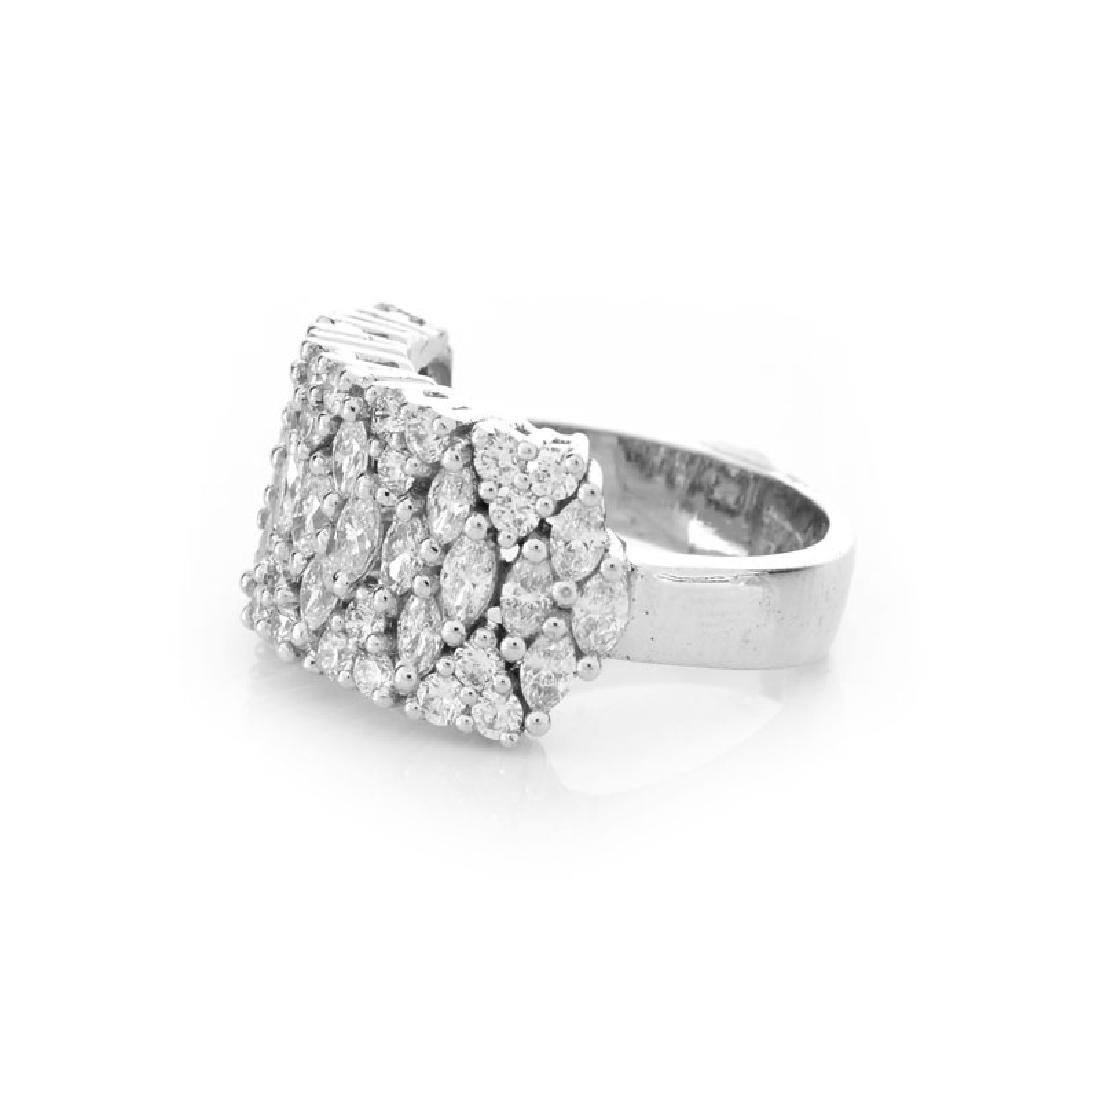 Approx. 2.35 Carat TW Marquise and Round Brilliant Cut - 3